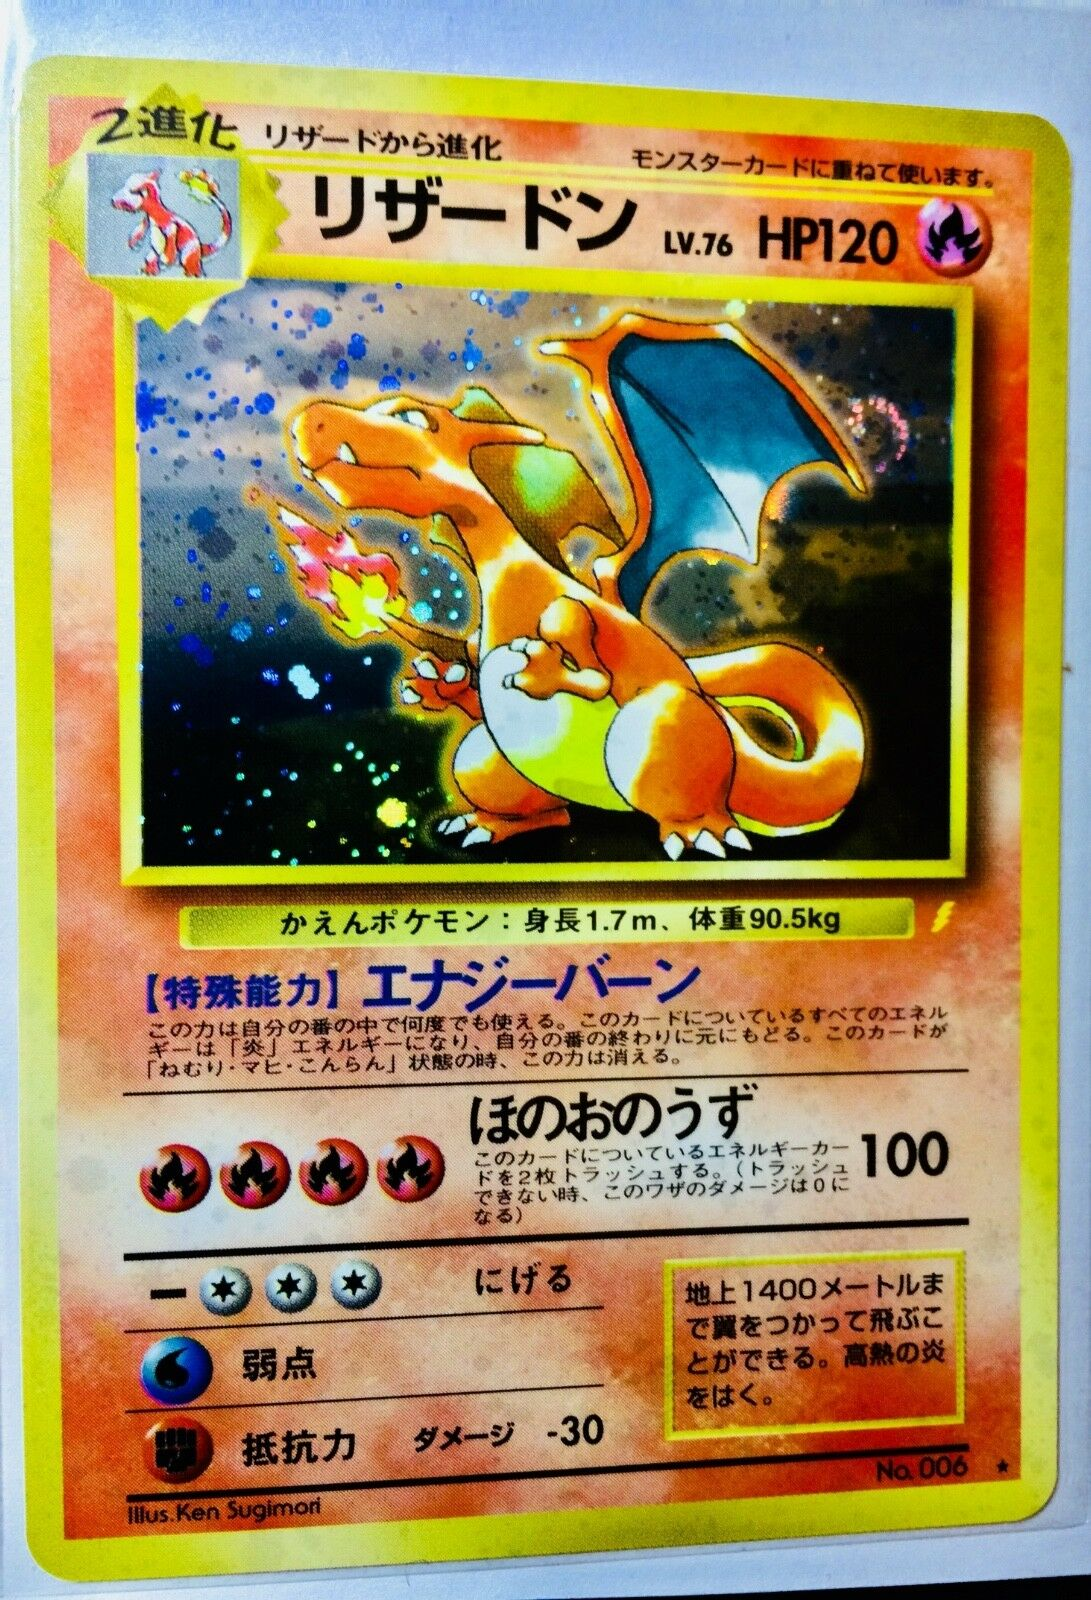 Pokemon Japanese Charizard Holofoil CD CD CD Promo card with Rarity Sign GEM MINT  78bf06